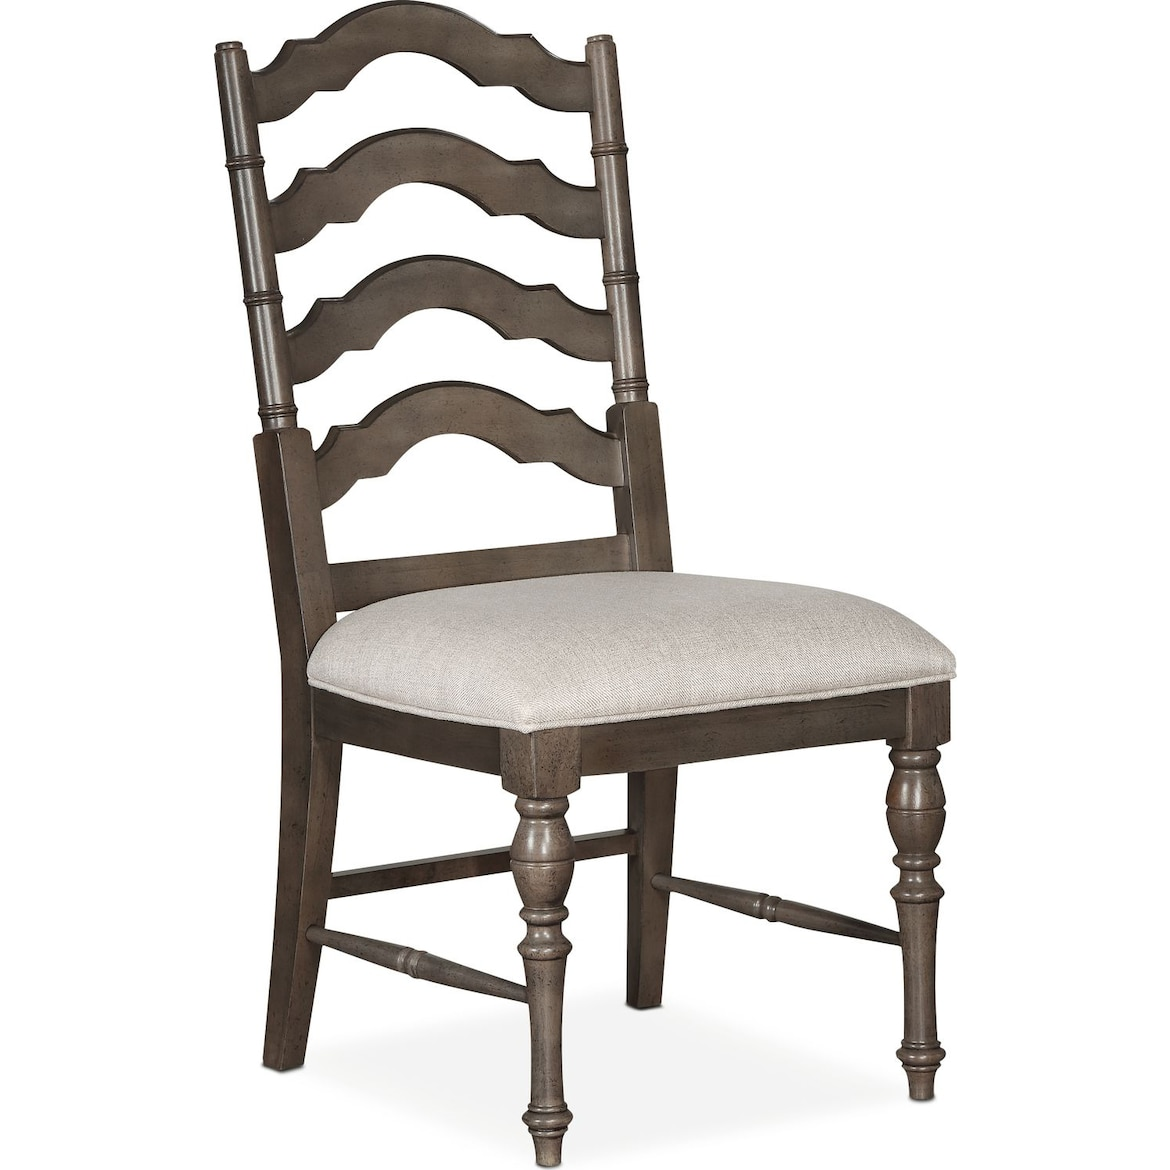 Closest American Furniture: Charleston Round Dining Table And 4 Side Chairs